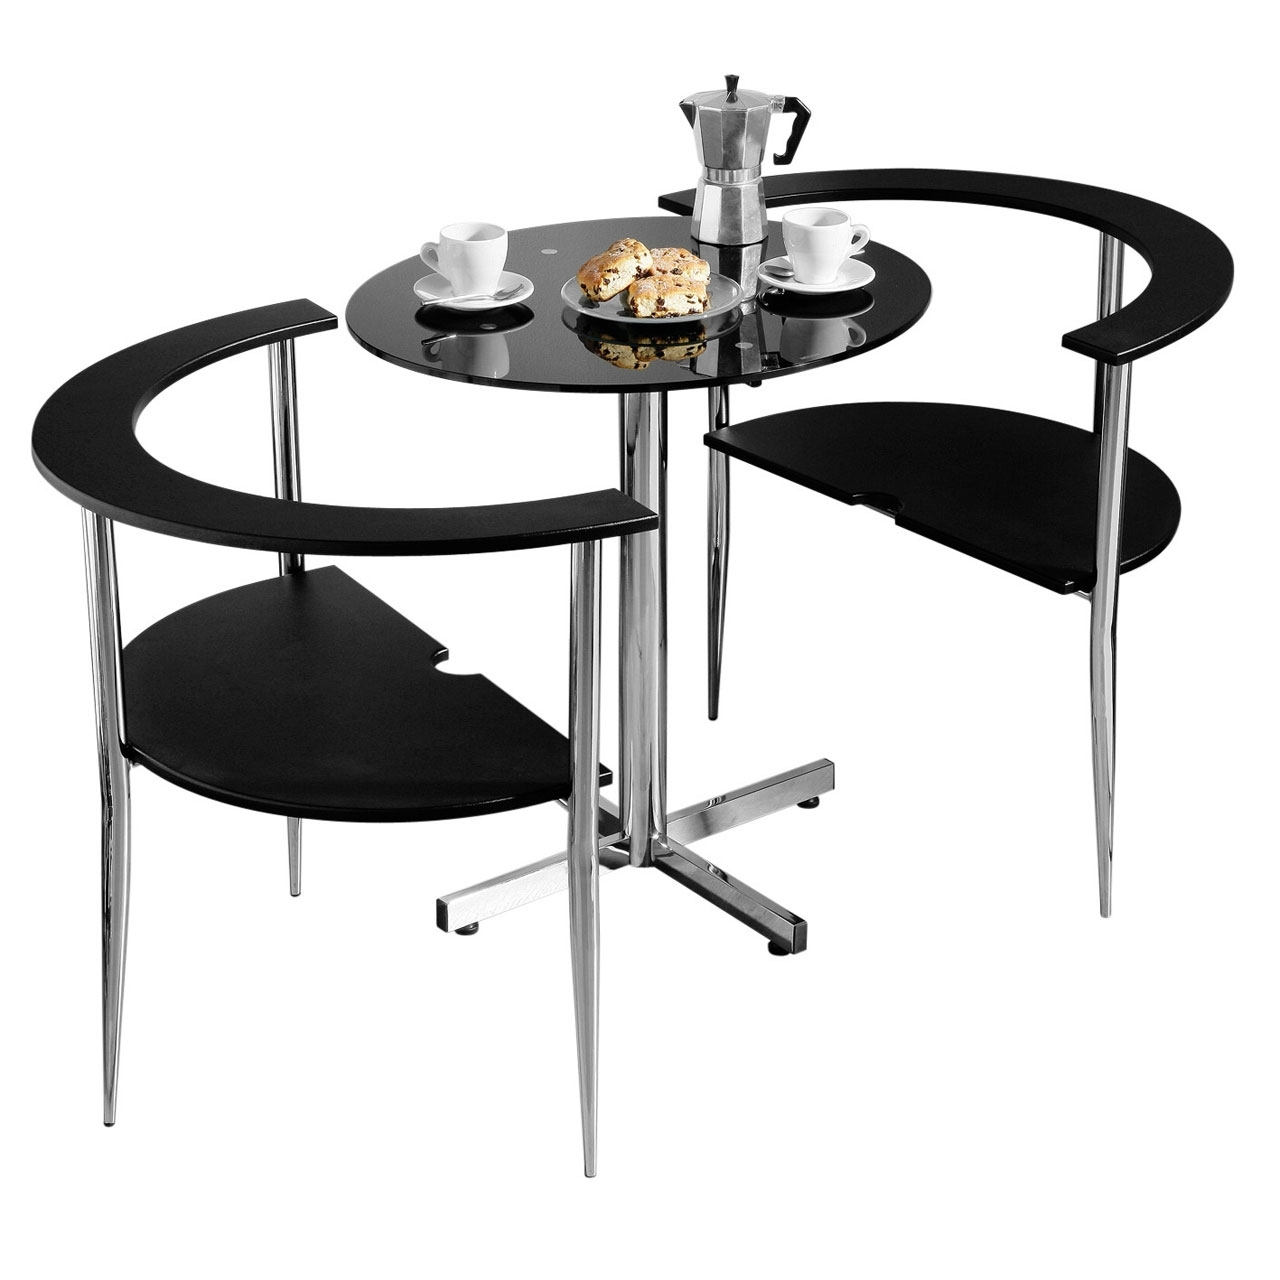 Small Dining Tables For 2 With Favorite 3Pc Round Love Dining Set Black Tempered Glass Table Top 2 Chairs (View 7 of 25)